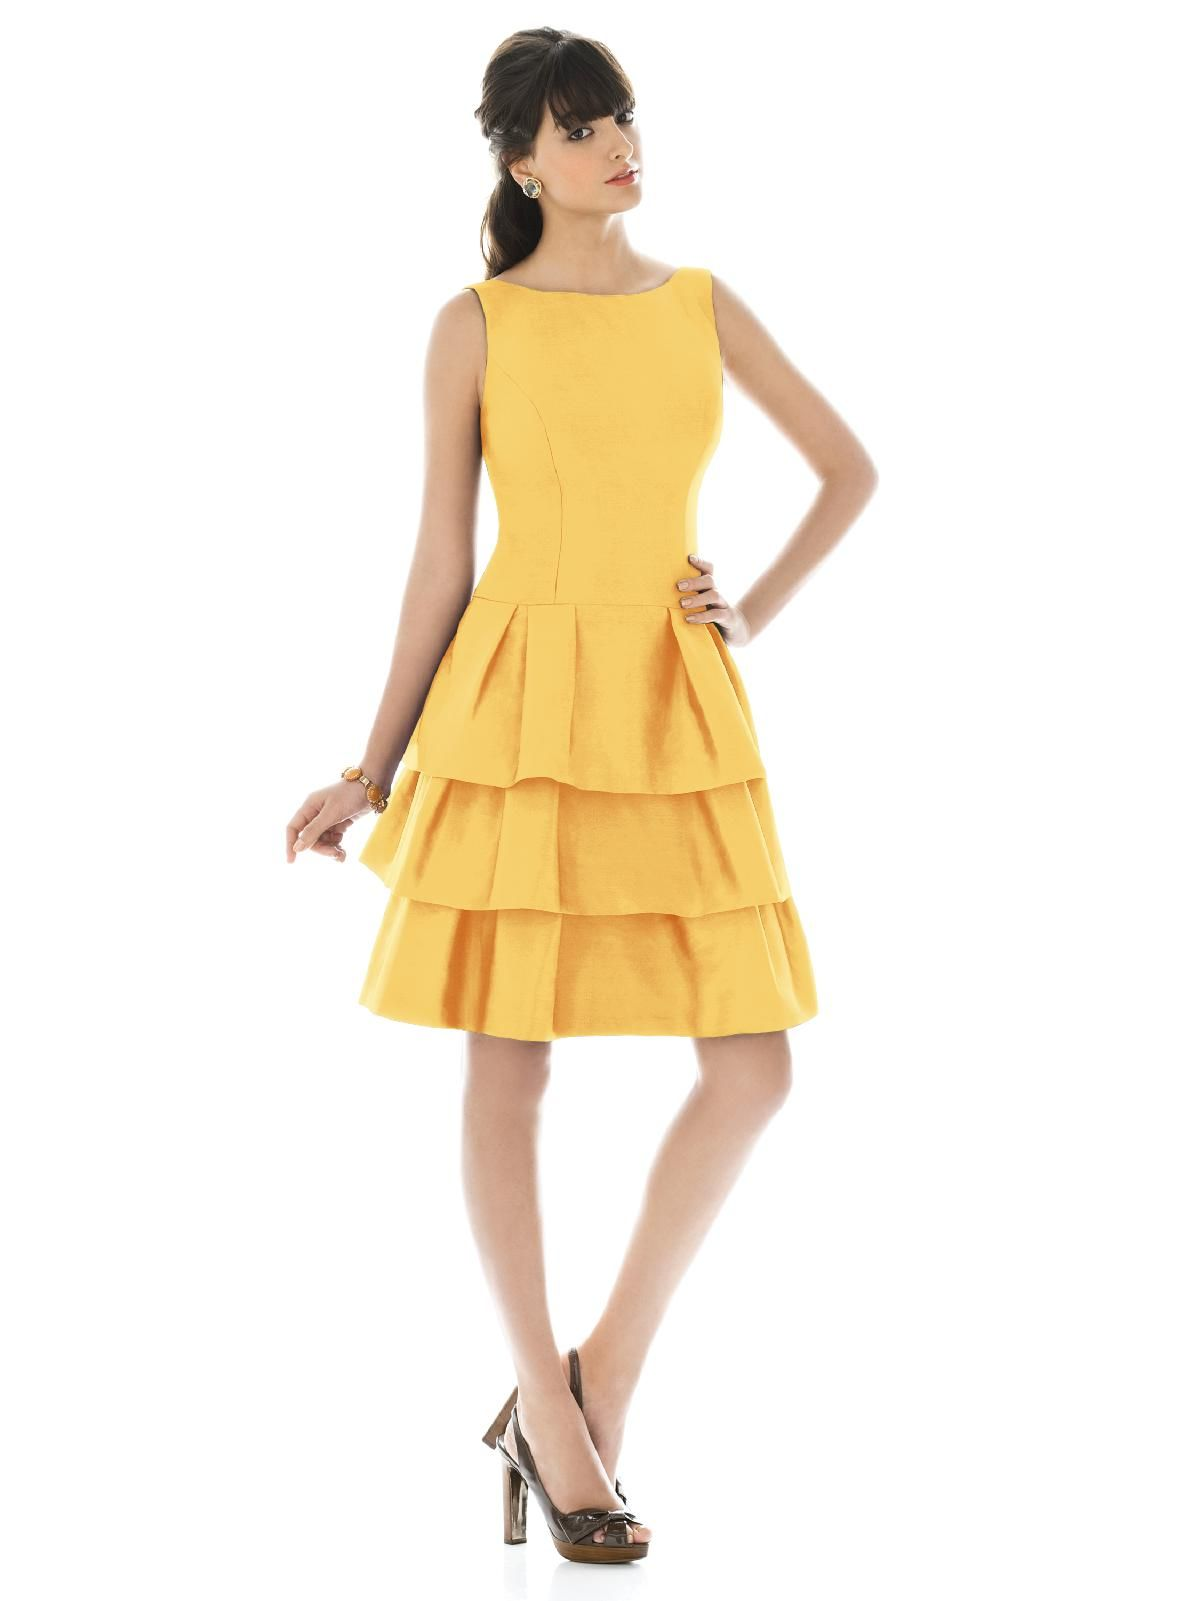 Alfred sung style d464 mango color dress pinterest alfred alfred sung bridesmaid dresses alfred sung style d464 mango ombrellifo Choice Image